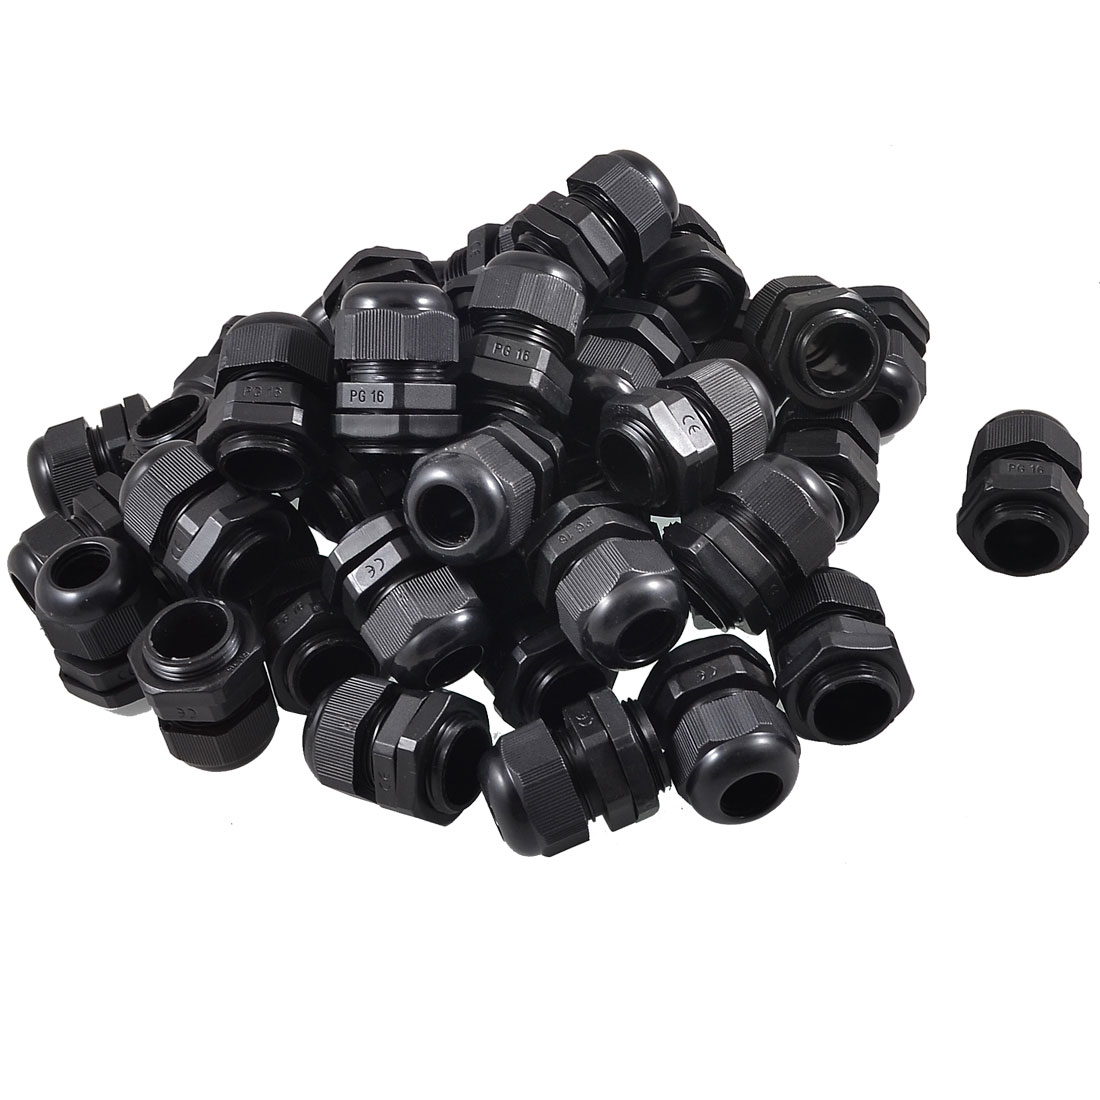 50 Pcs 10mm-14mm Electric Cable Waterproof PG16 Plastic Glands Black